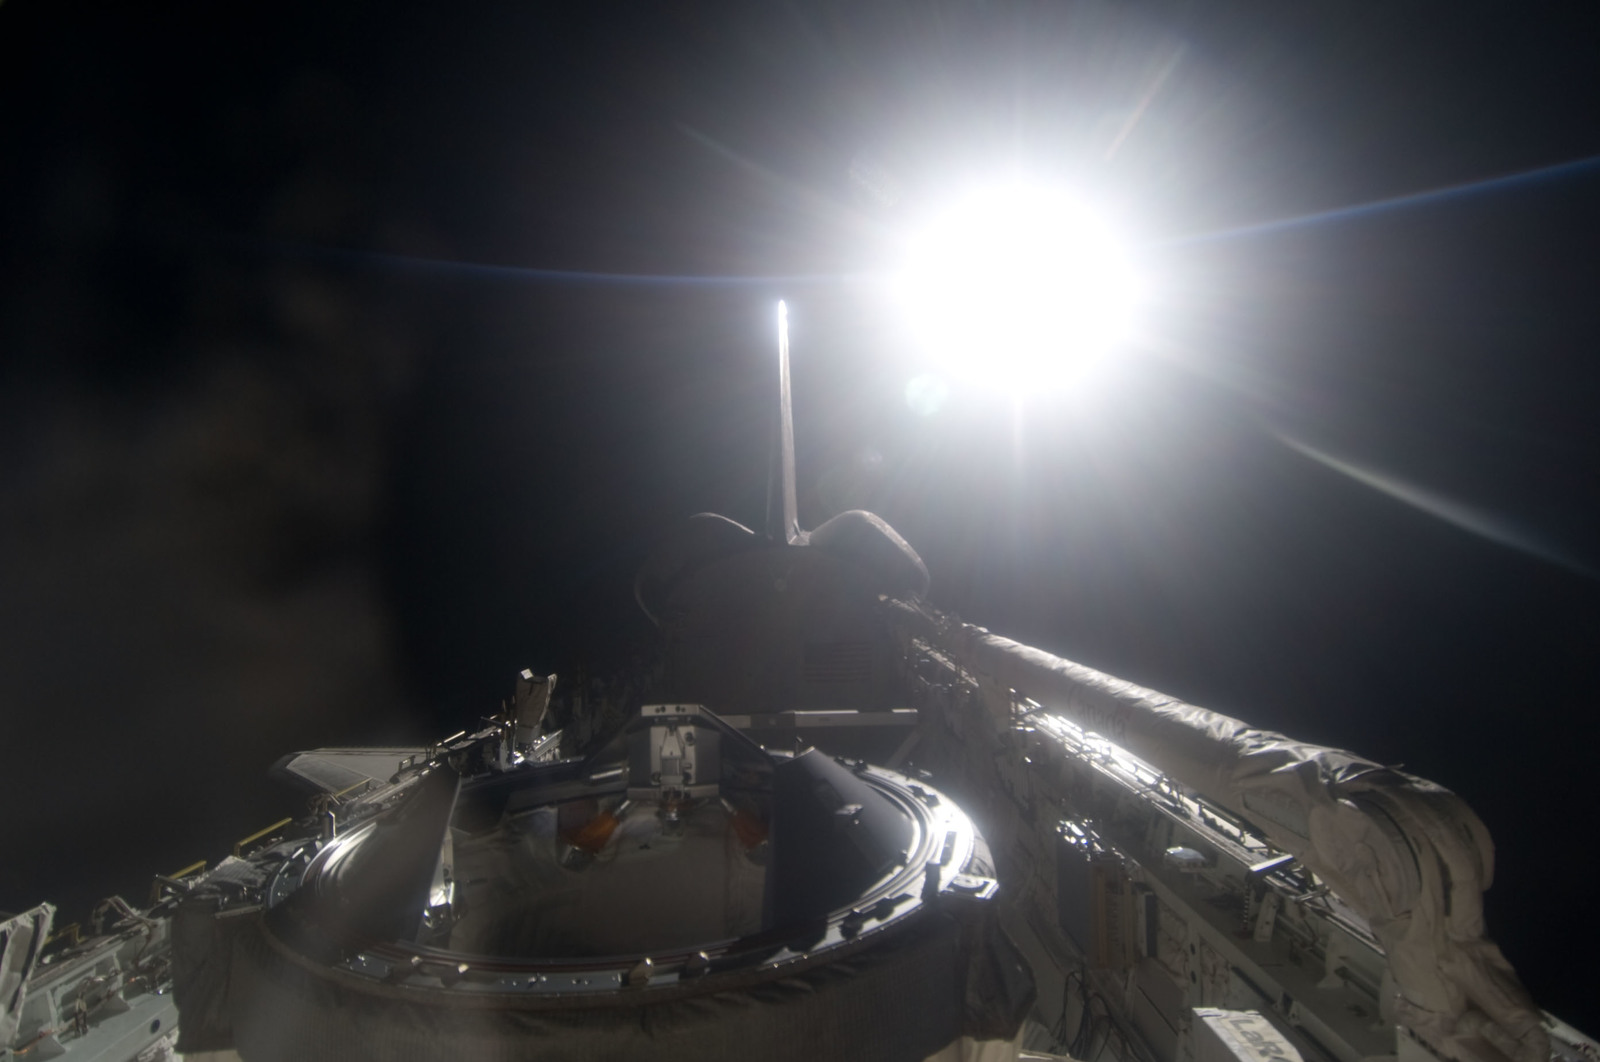 S134E012510 - STS-134 - View of Sun Rising from behind Earth's Horizon